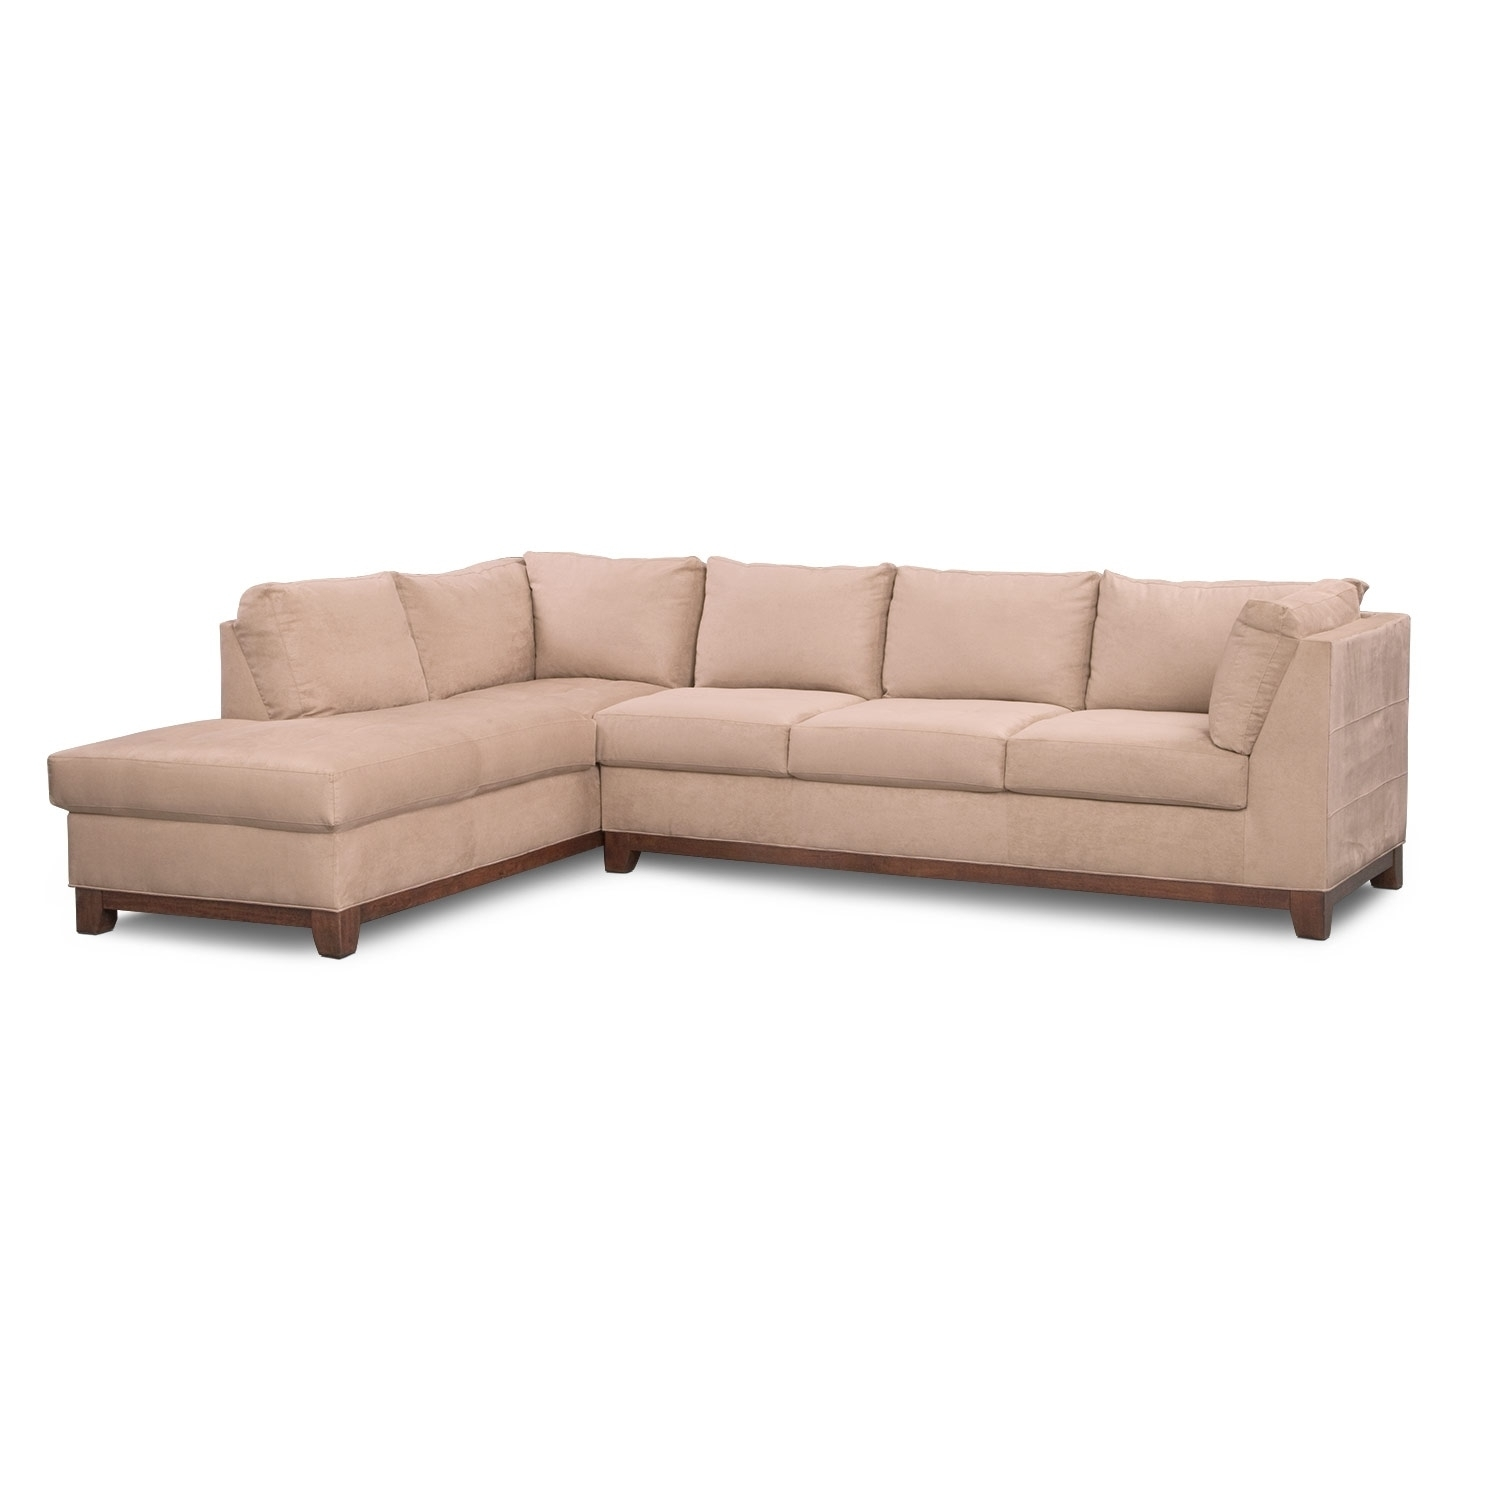 Soho 2-Piece Sectional With Left-Facing Chaise - Cobblestone | Value in Arrowmask 2 Piece Sectionals With Sleeper & Left Facing Chaise (Image 26 of 30)